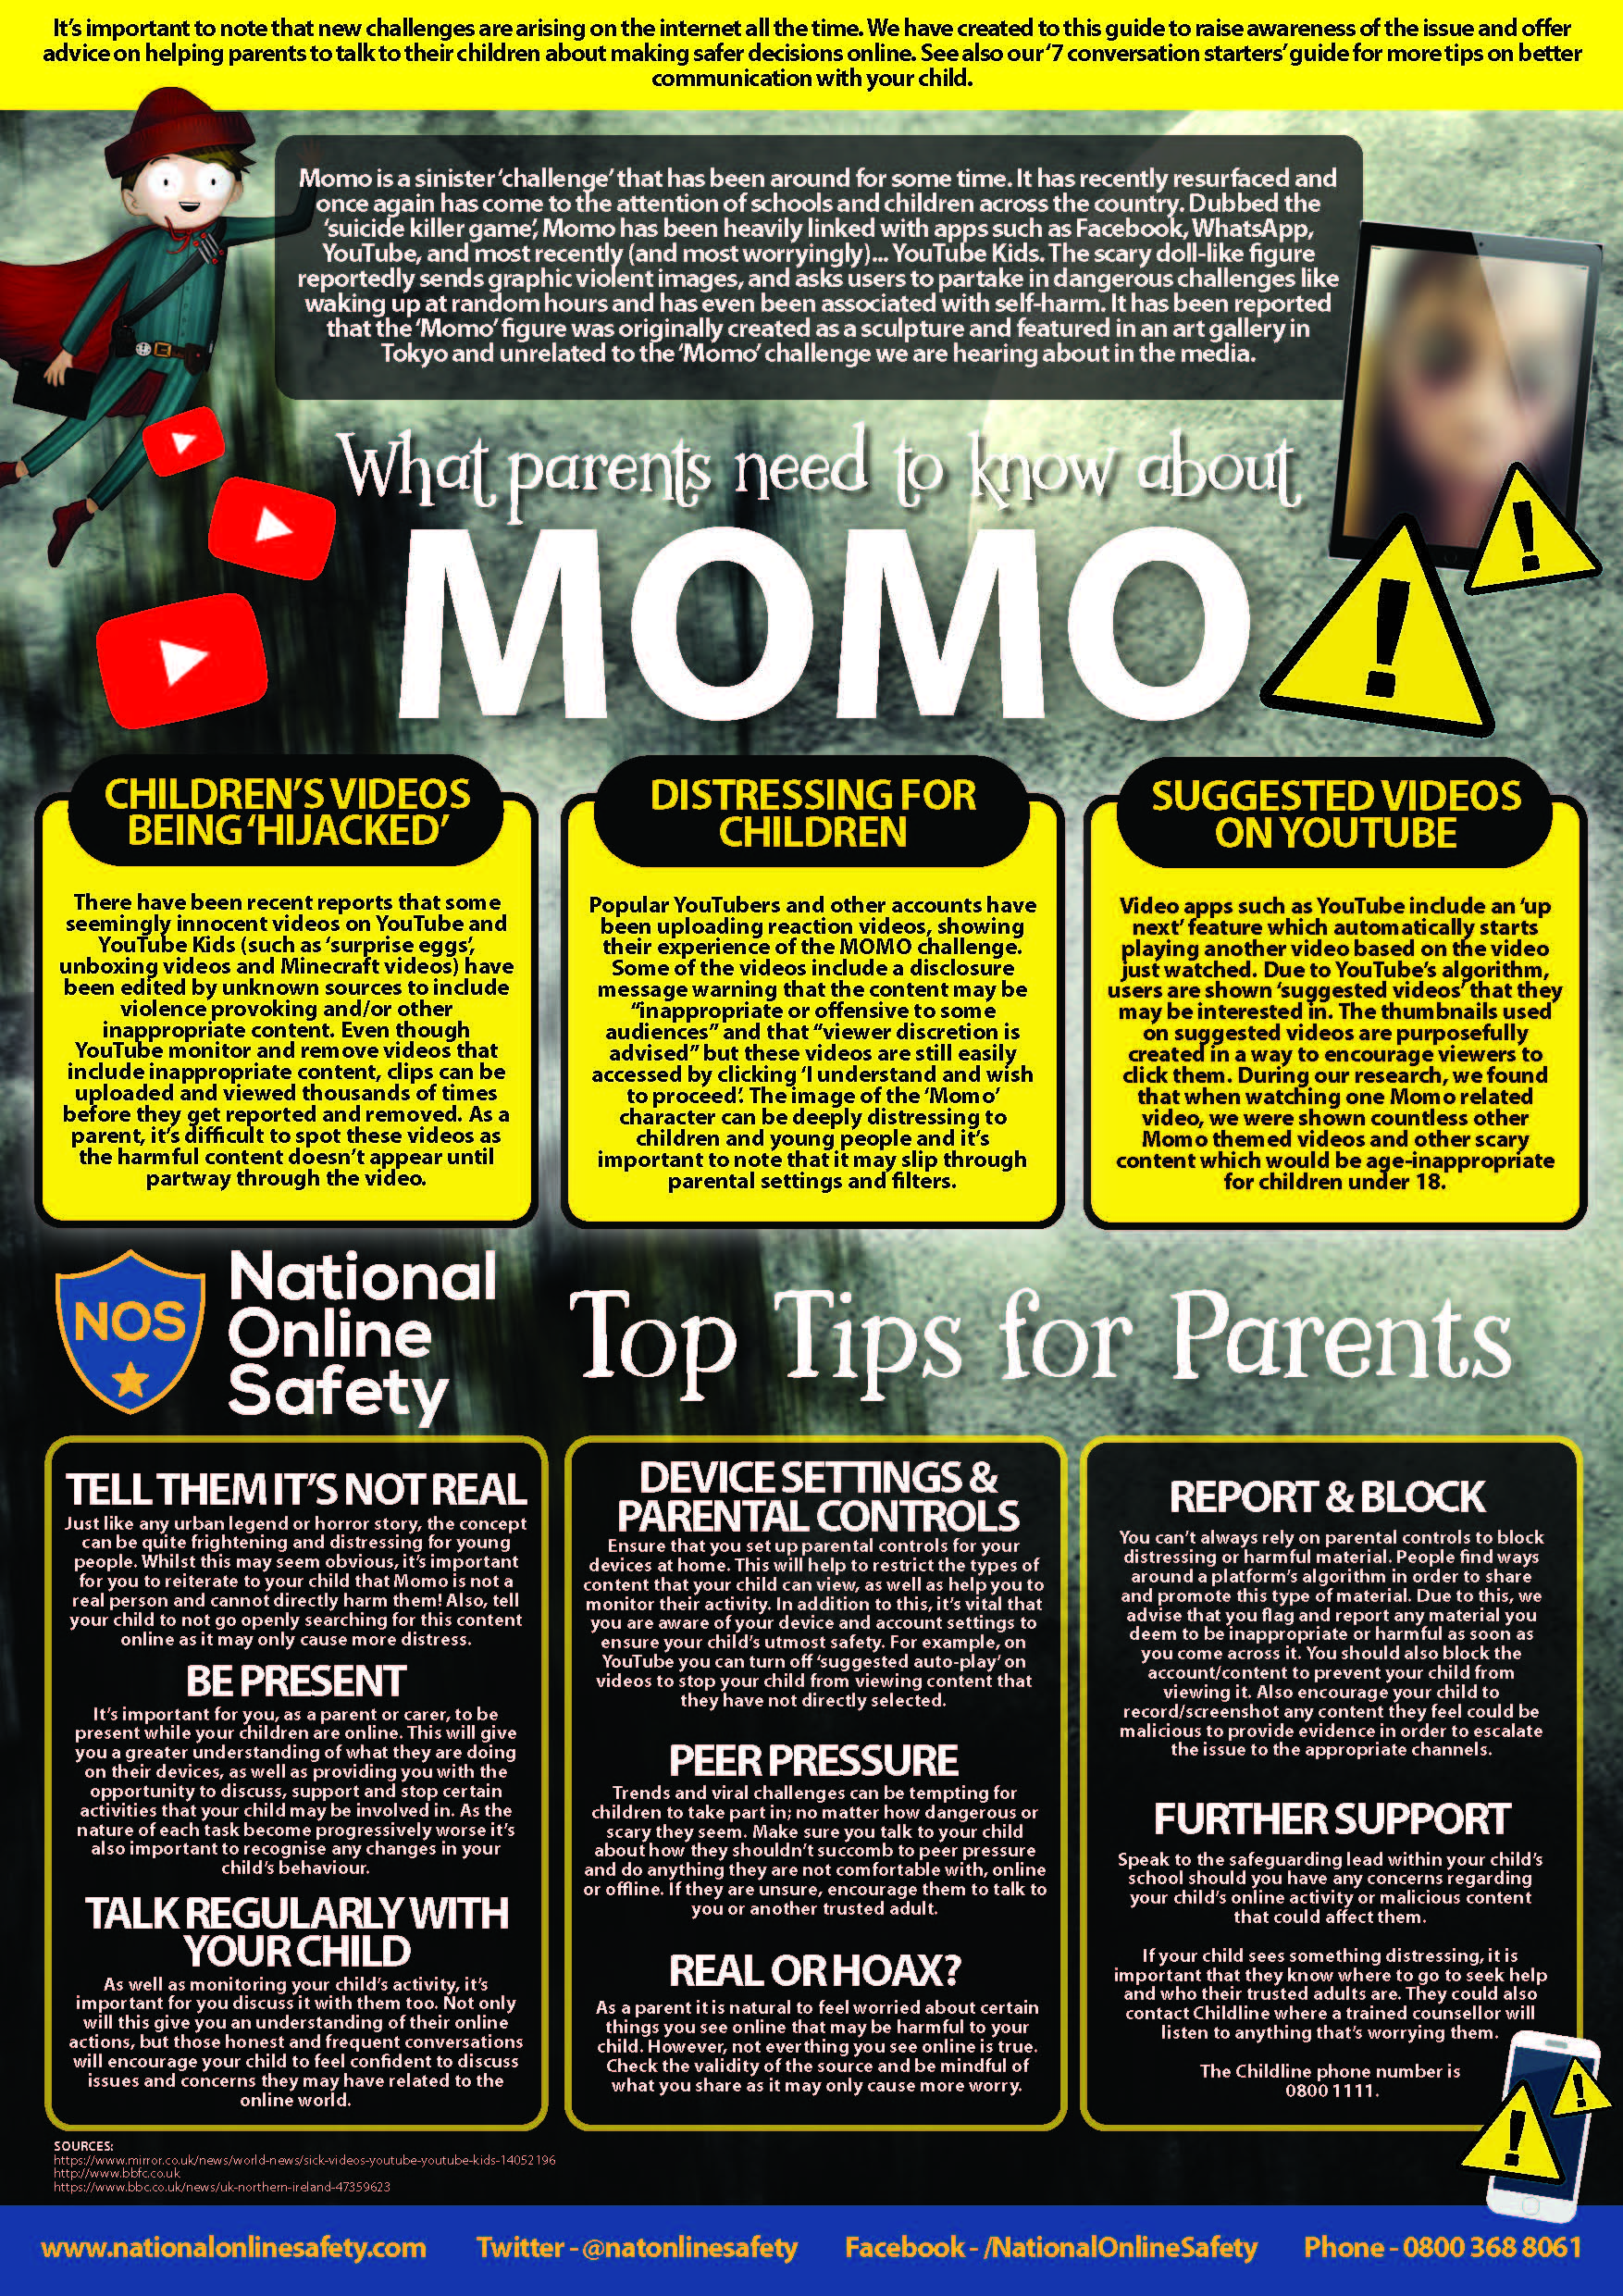 MOMO-Online-Safety-Guide-for-Parents-FEB-2019